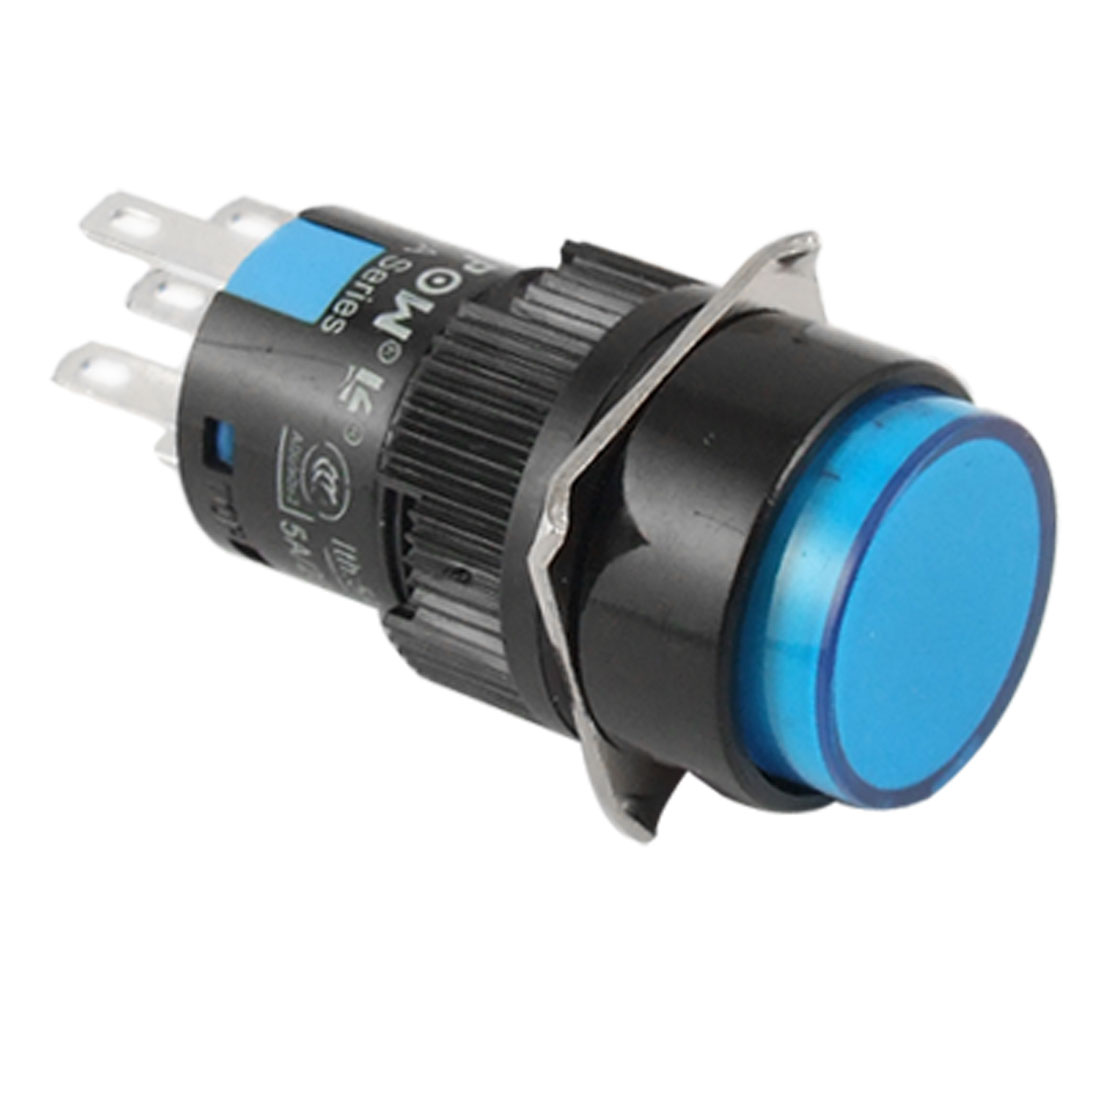 LAS1-A DC 24V Blue Light Illuminated Self-locking Push Button Switch